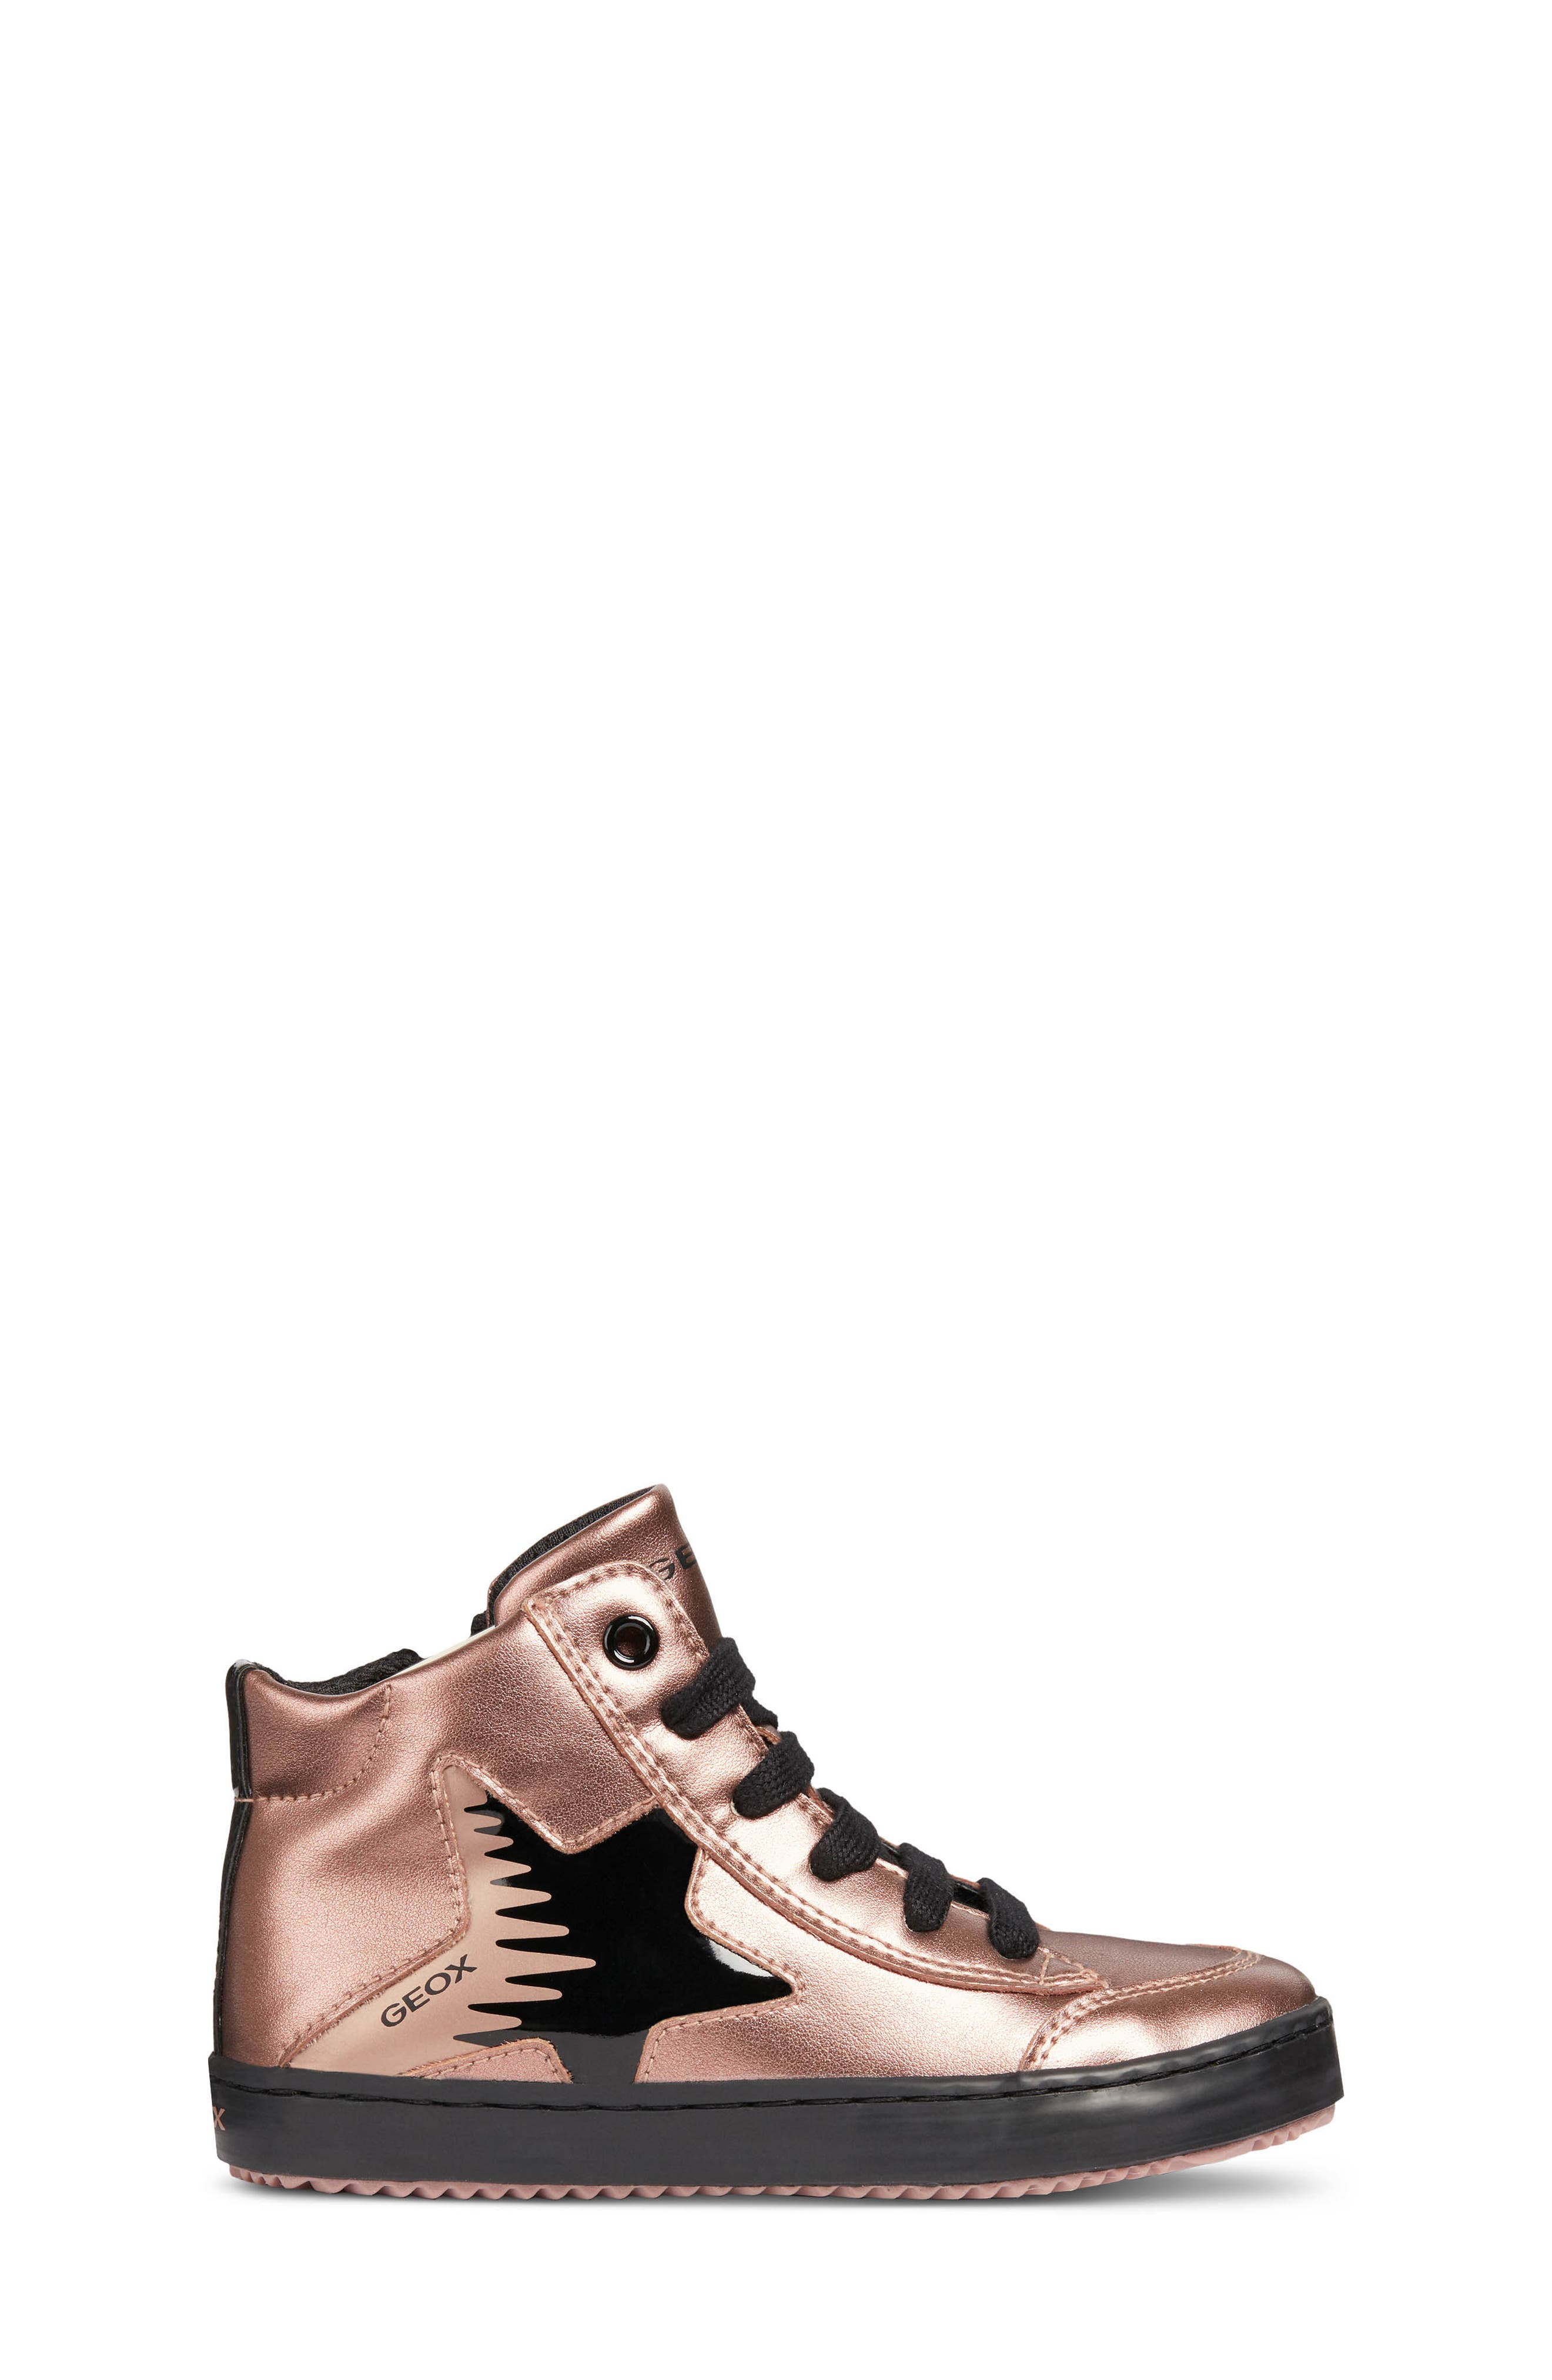 Kalispera Metallic High Top Sneaker,                             Alternate thumbnail 3, color,                             ROSE SMOKE